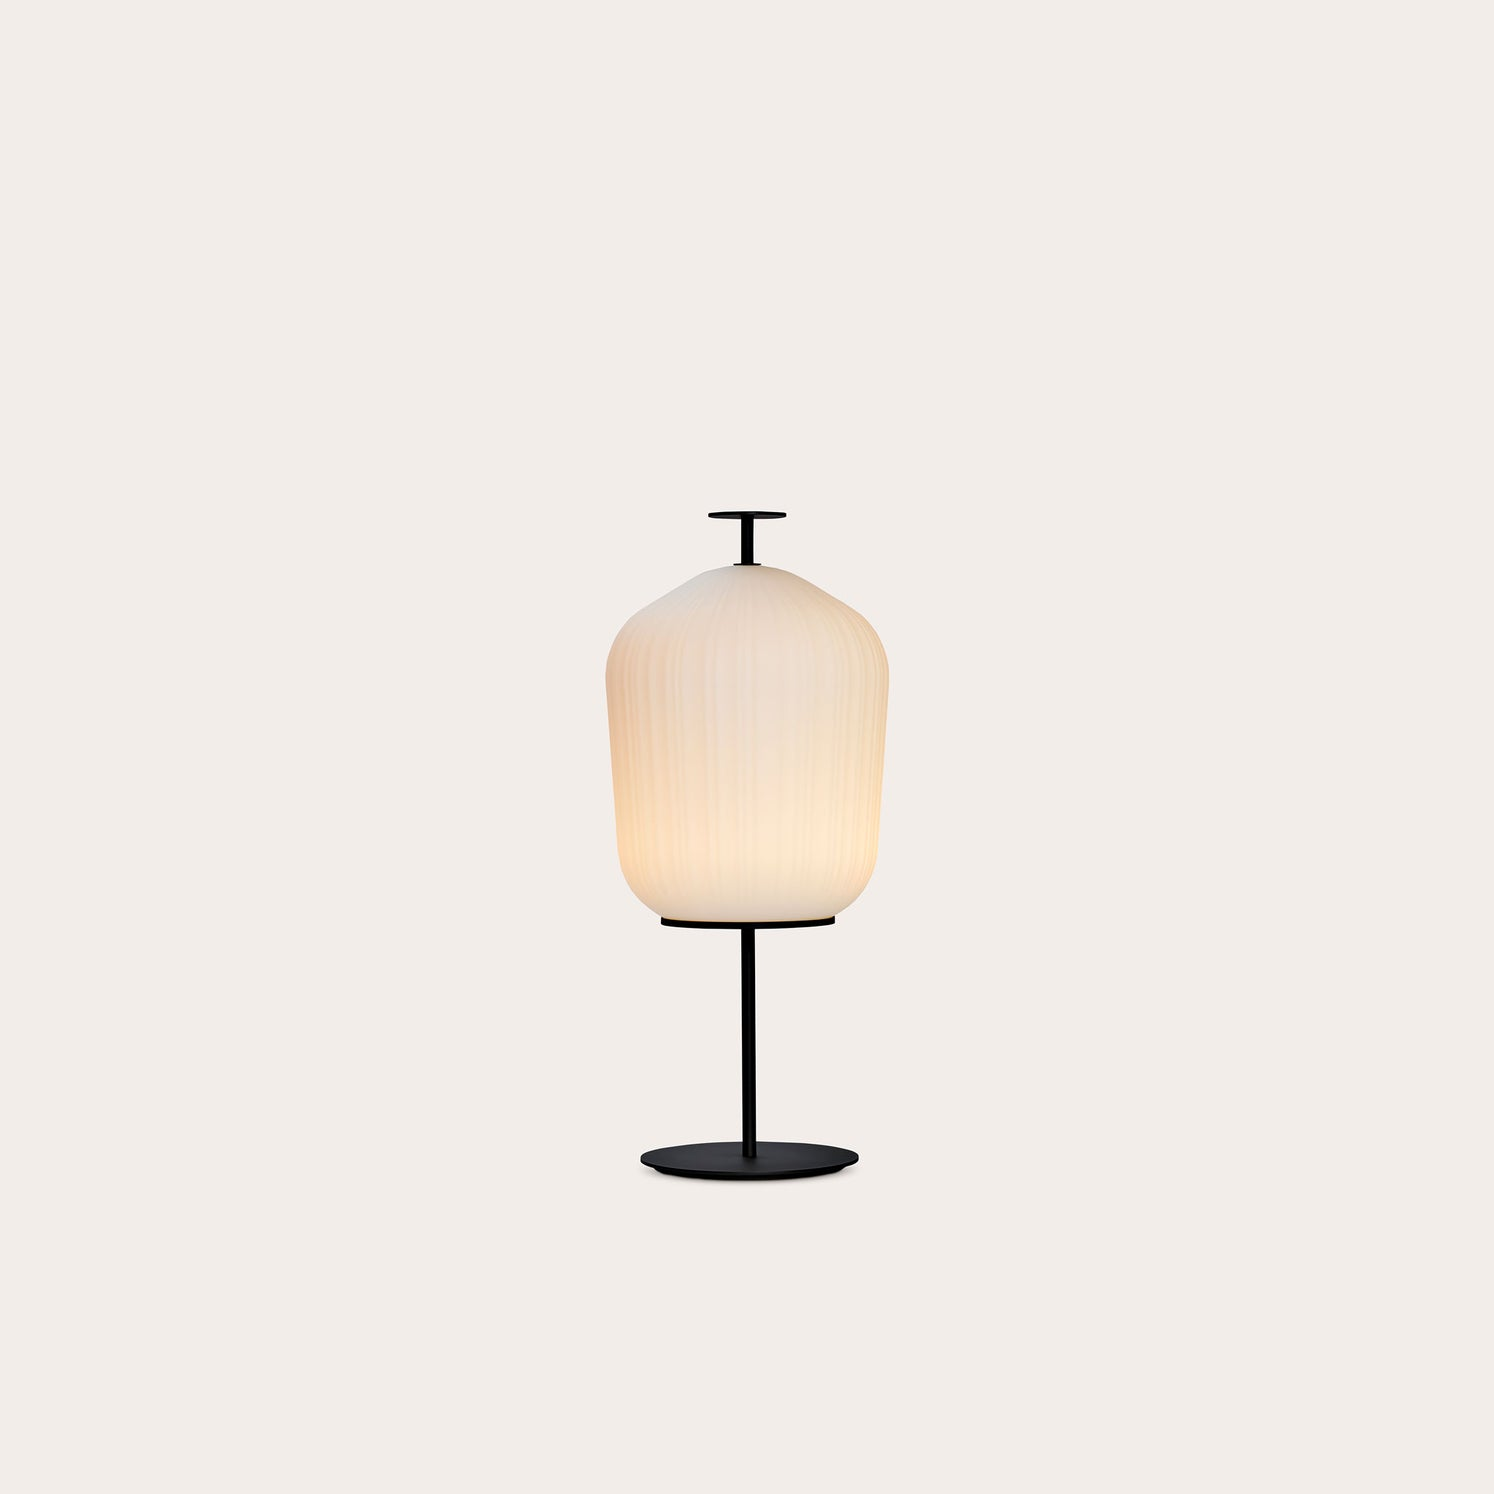 Plissee Floor Lamp LIghting Sebastian Herkner Designer Furniture Sku: 001-160-10100